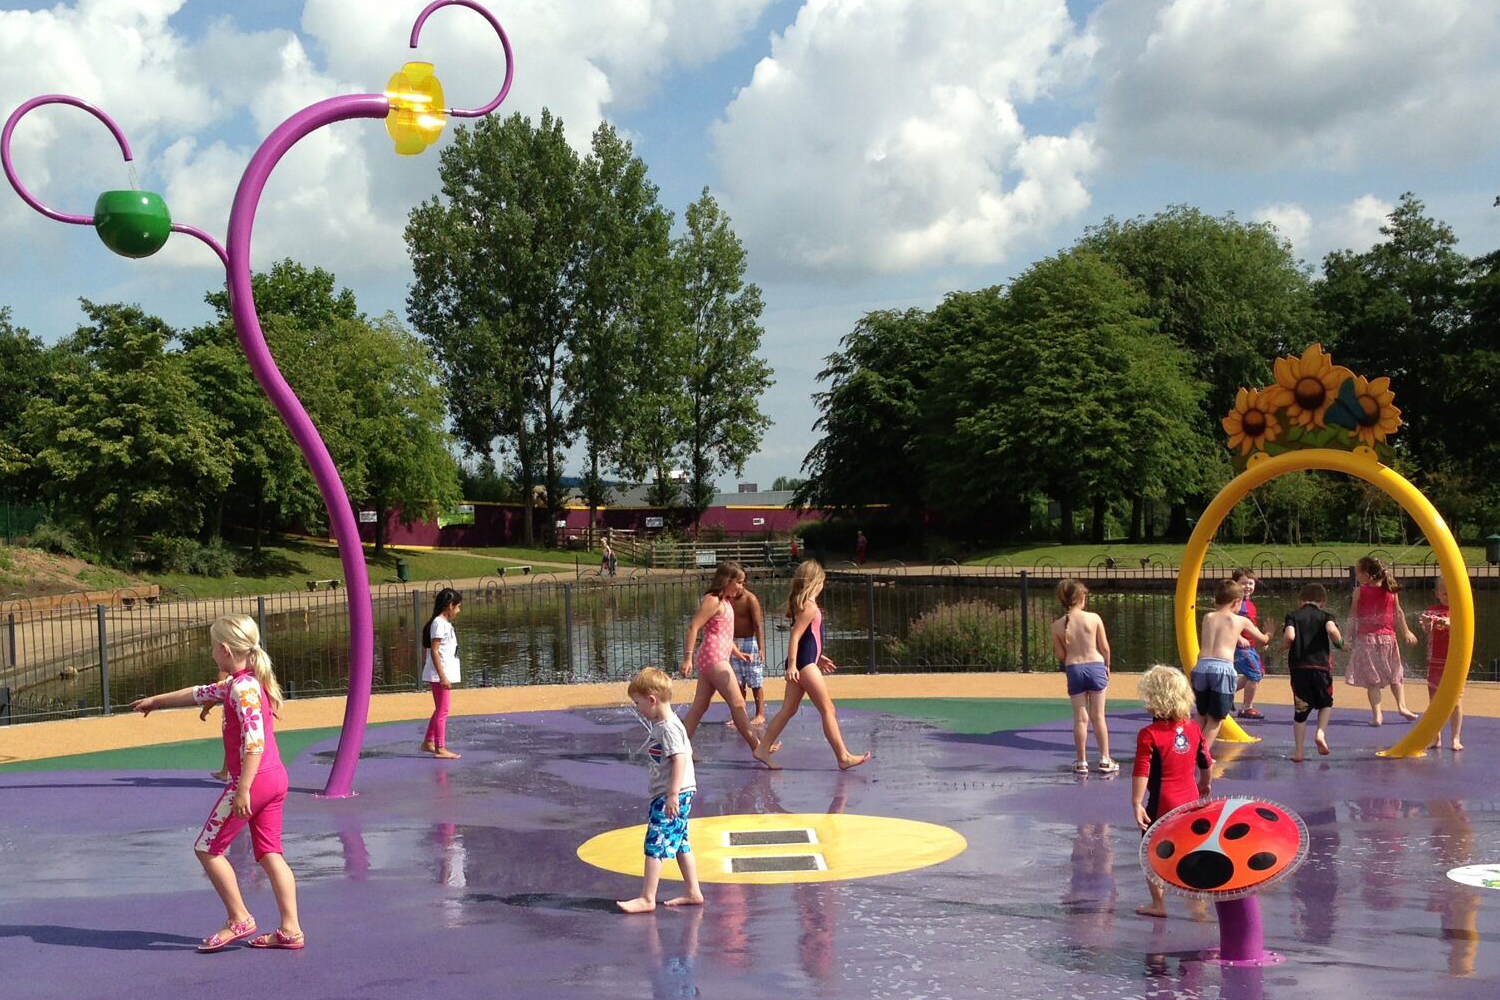 Illustration of children playing in the water play area at Telford Town Park